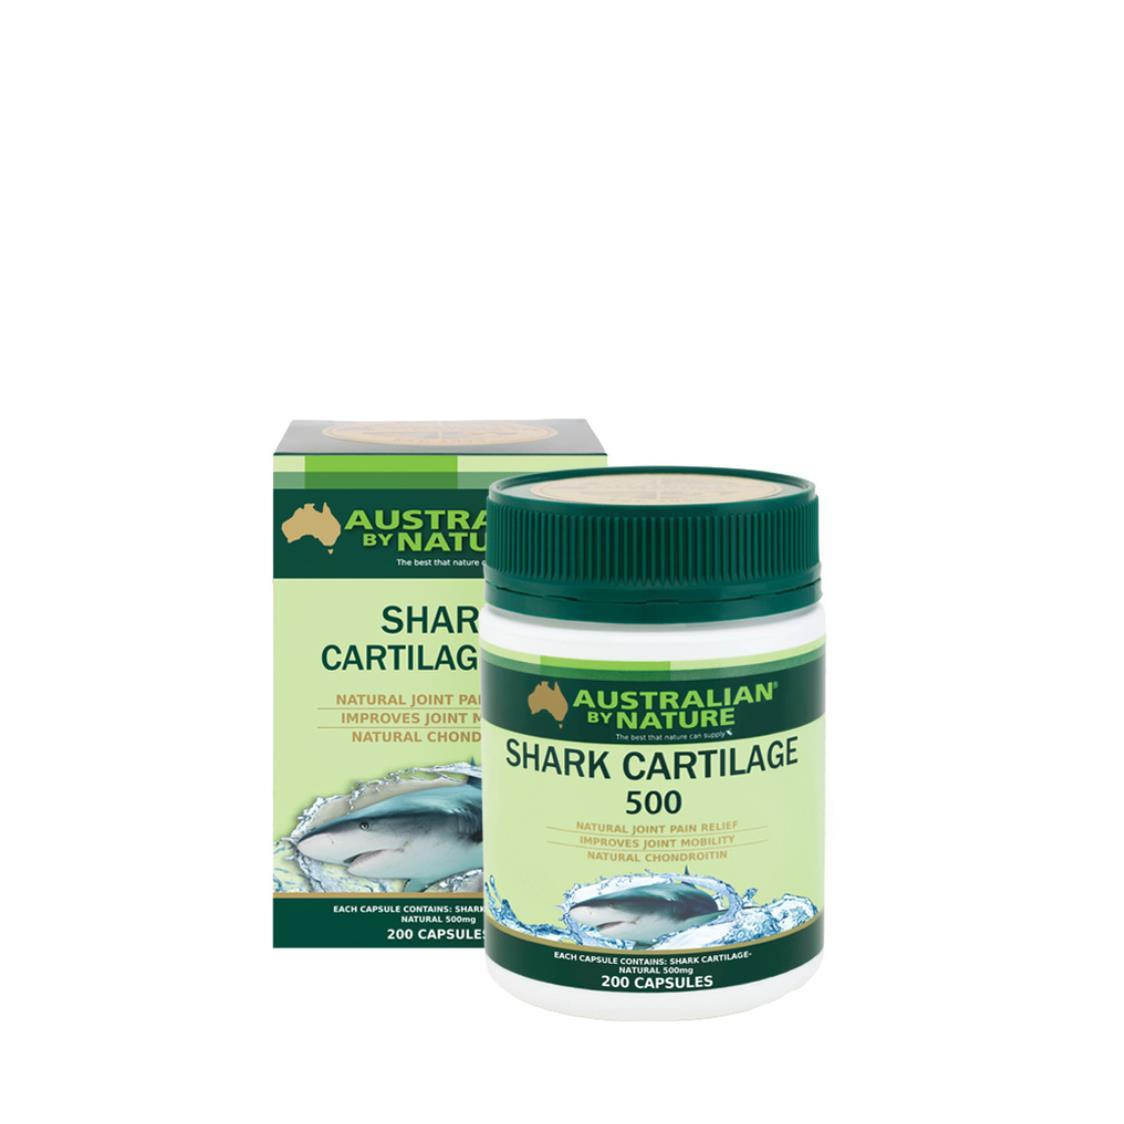 Shark Cartilage 500mg 200 Capsules